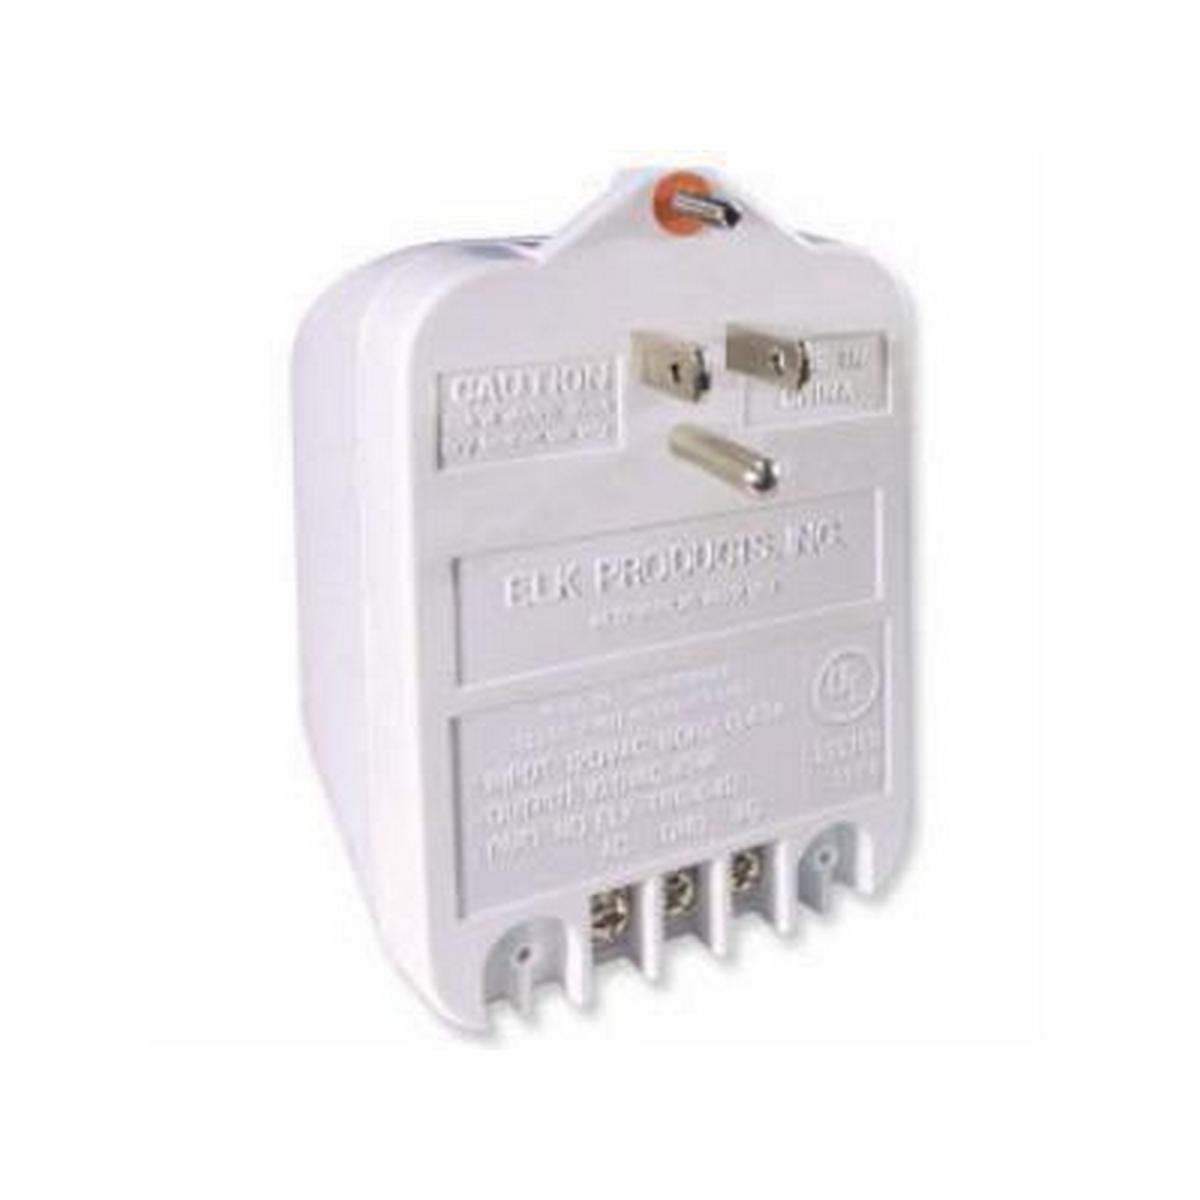 Aprilaire Plugin Transformer, 24V, 40VA